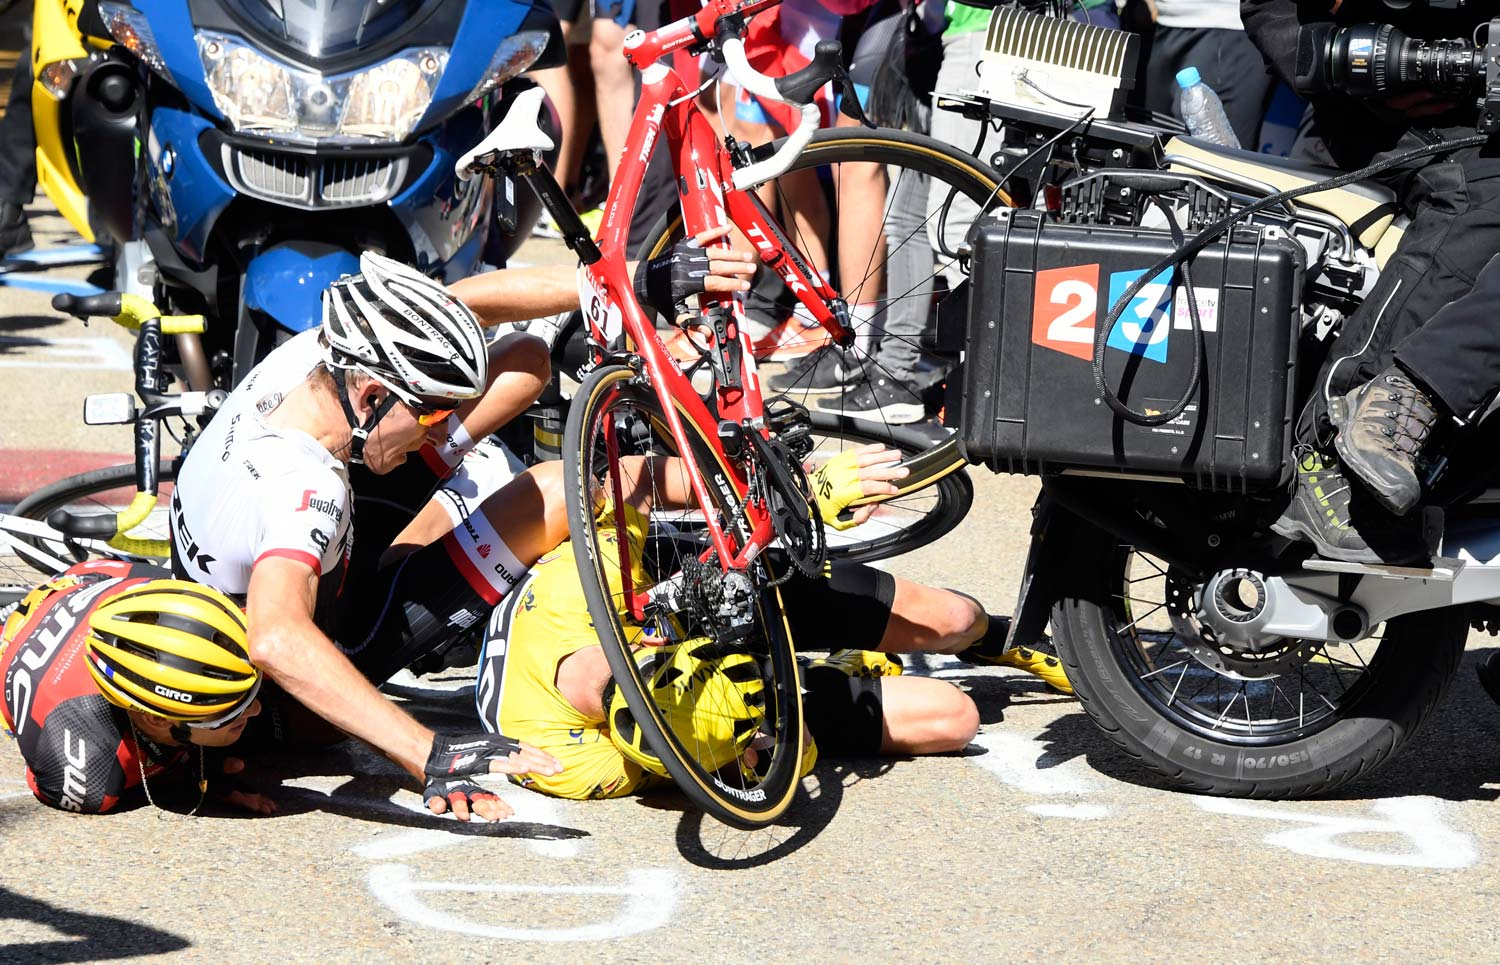 Moments after impact... Froome, Bauke Mollema and  Richie Porte found themselves with nowhere to ride near the finish of stage 12. Photo: Graham Watson